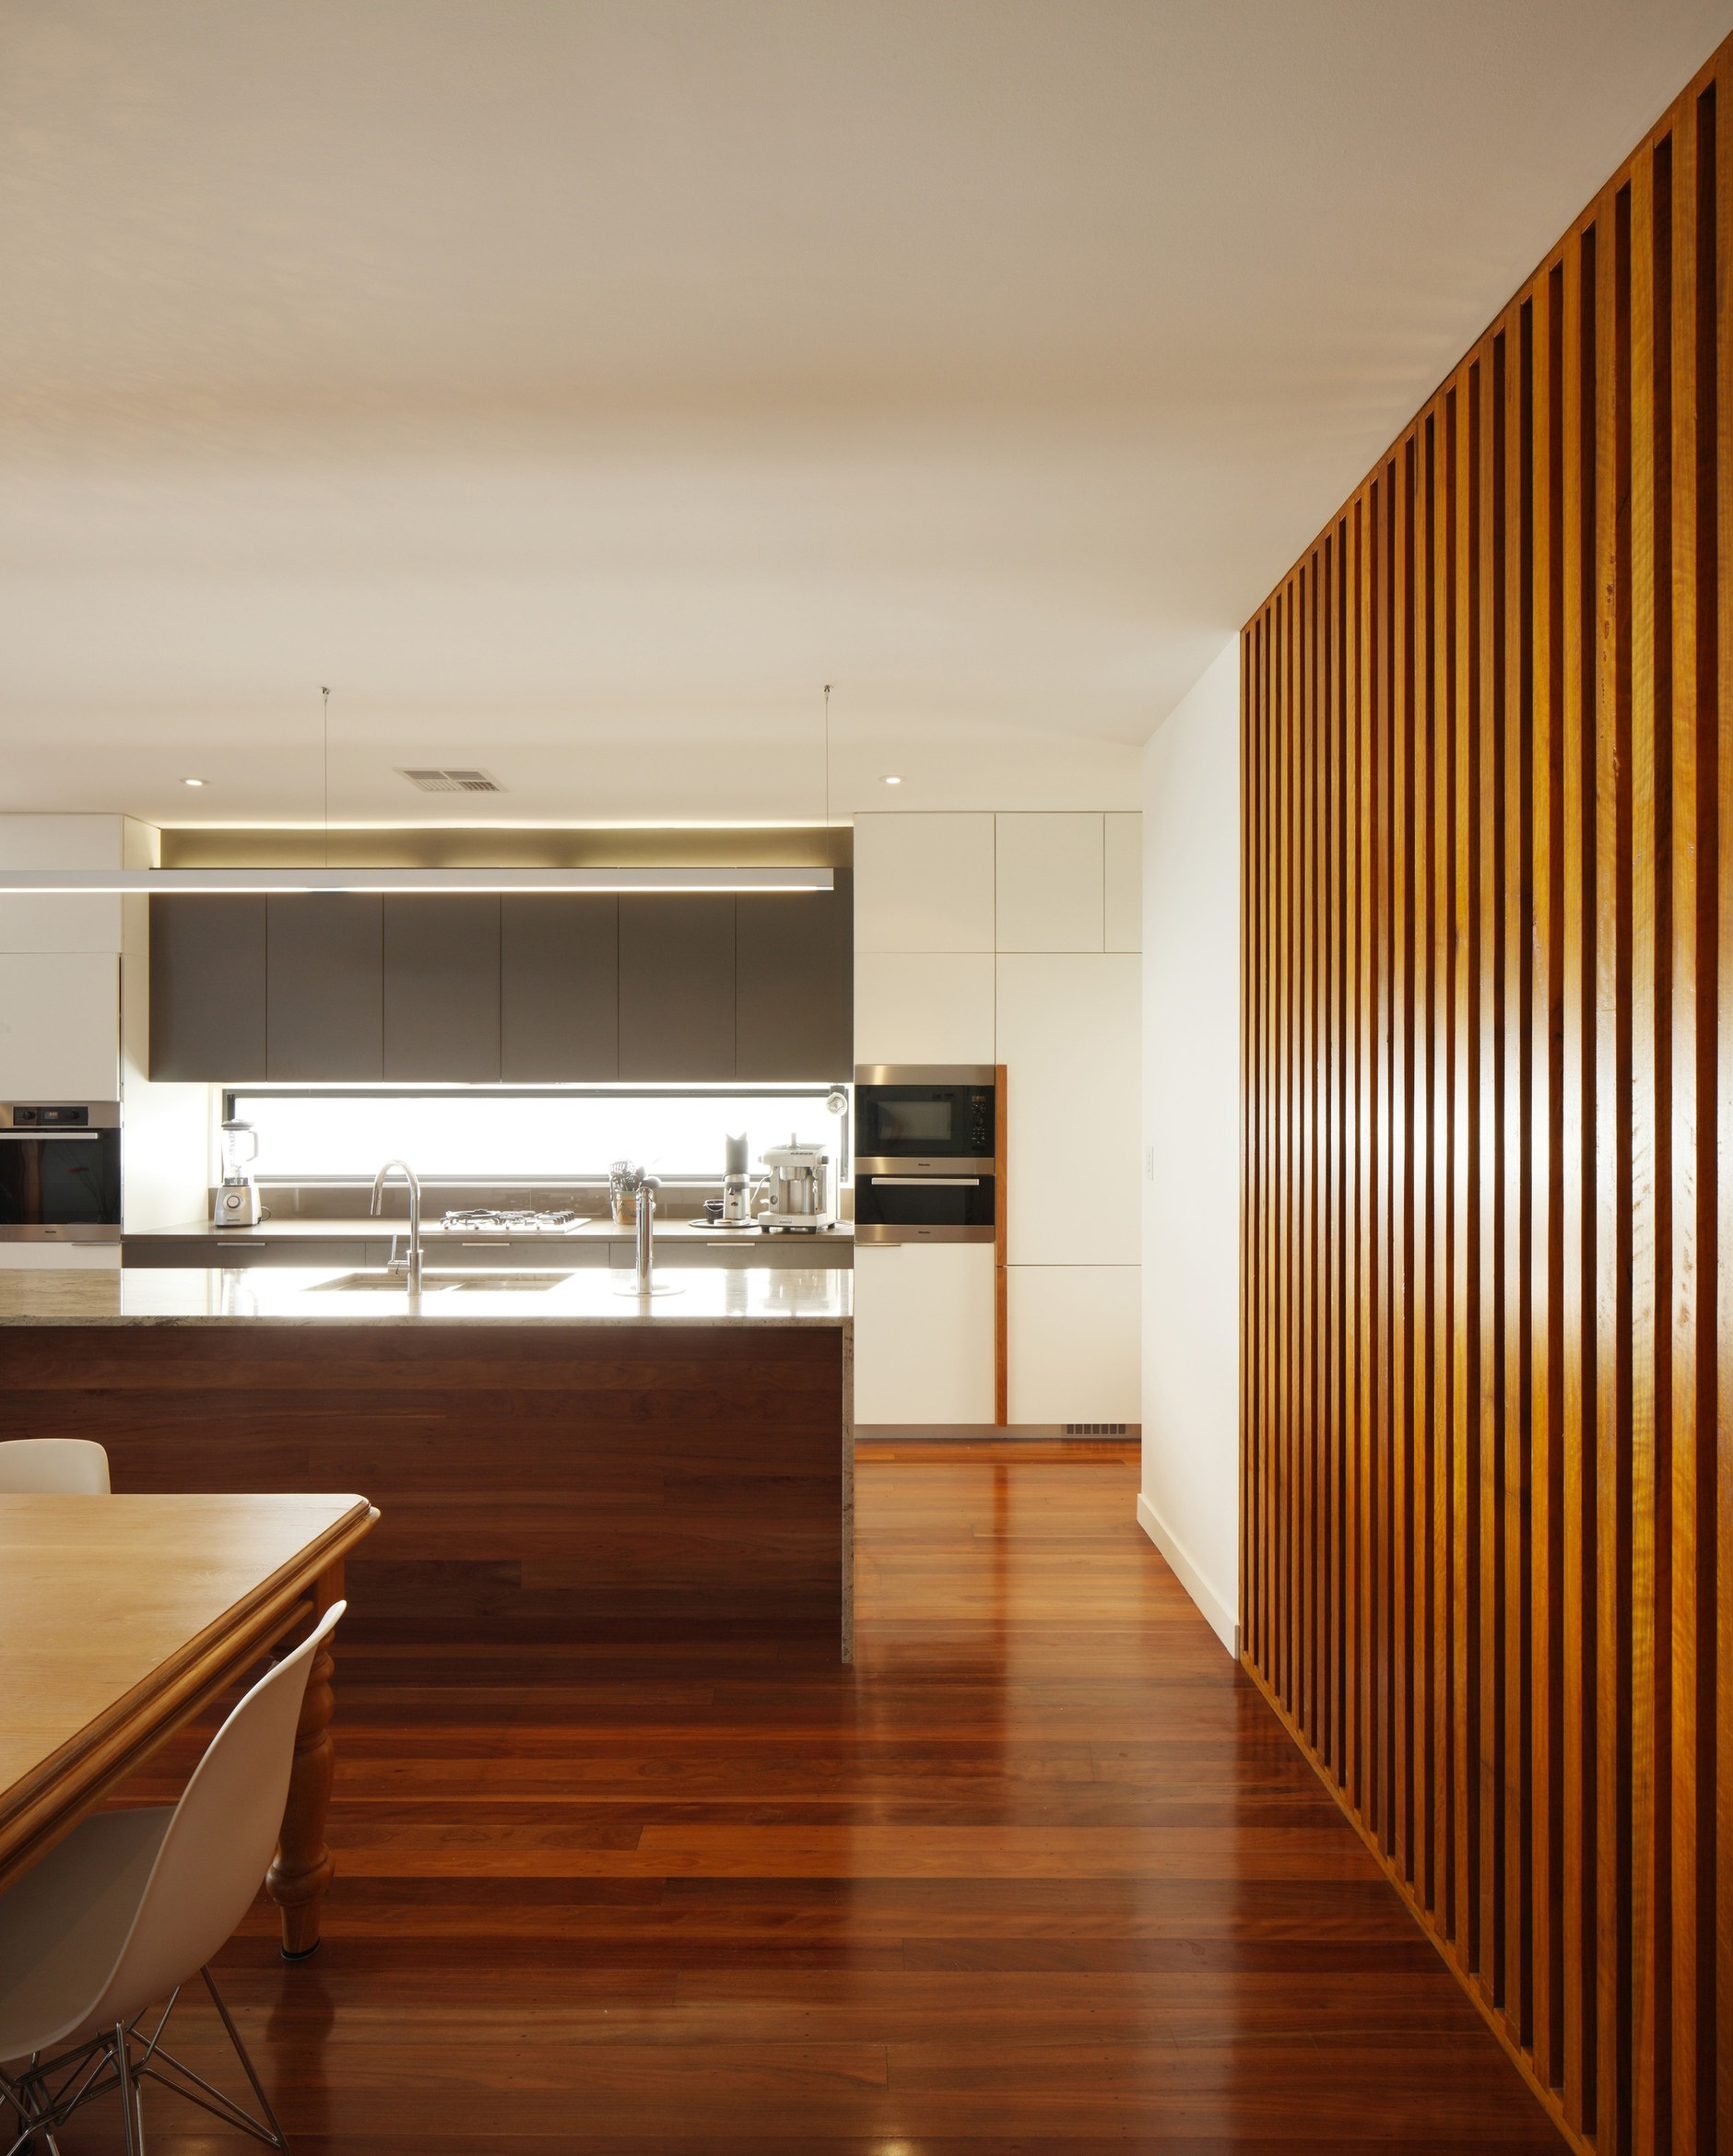 Kitchen Renovation North Brisbane: River Room By Shaun Lockyer Architects